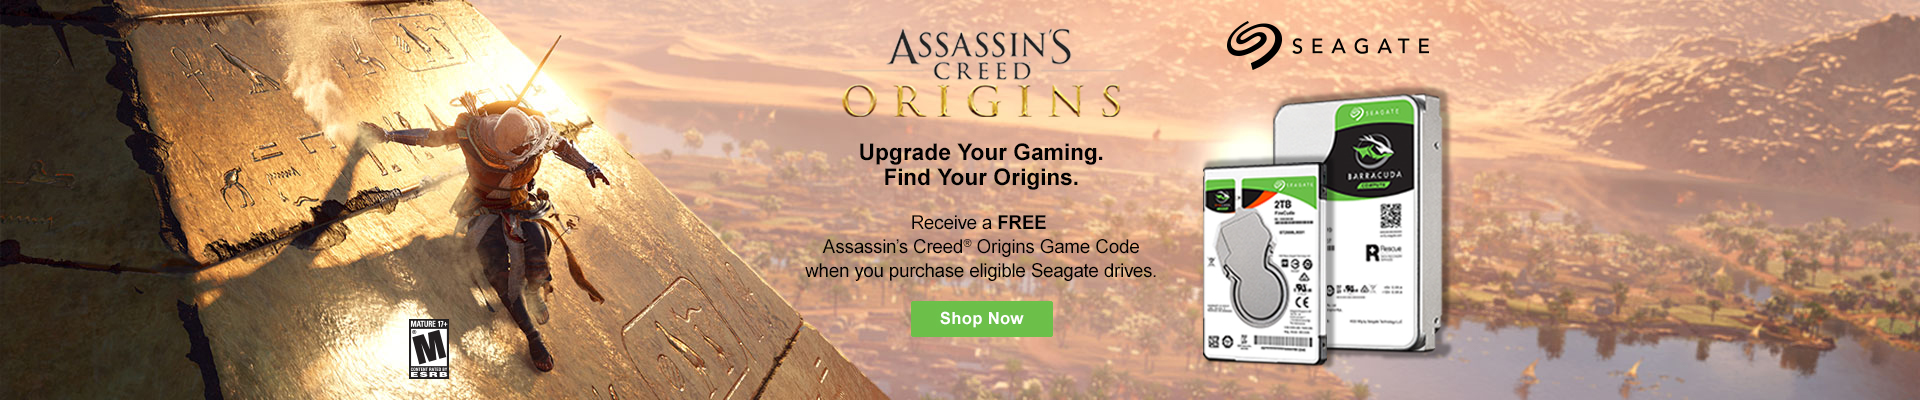 Buy Eligible Seagate Drives get Free Assassin's Creed Origins game code